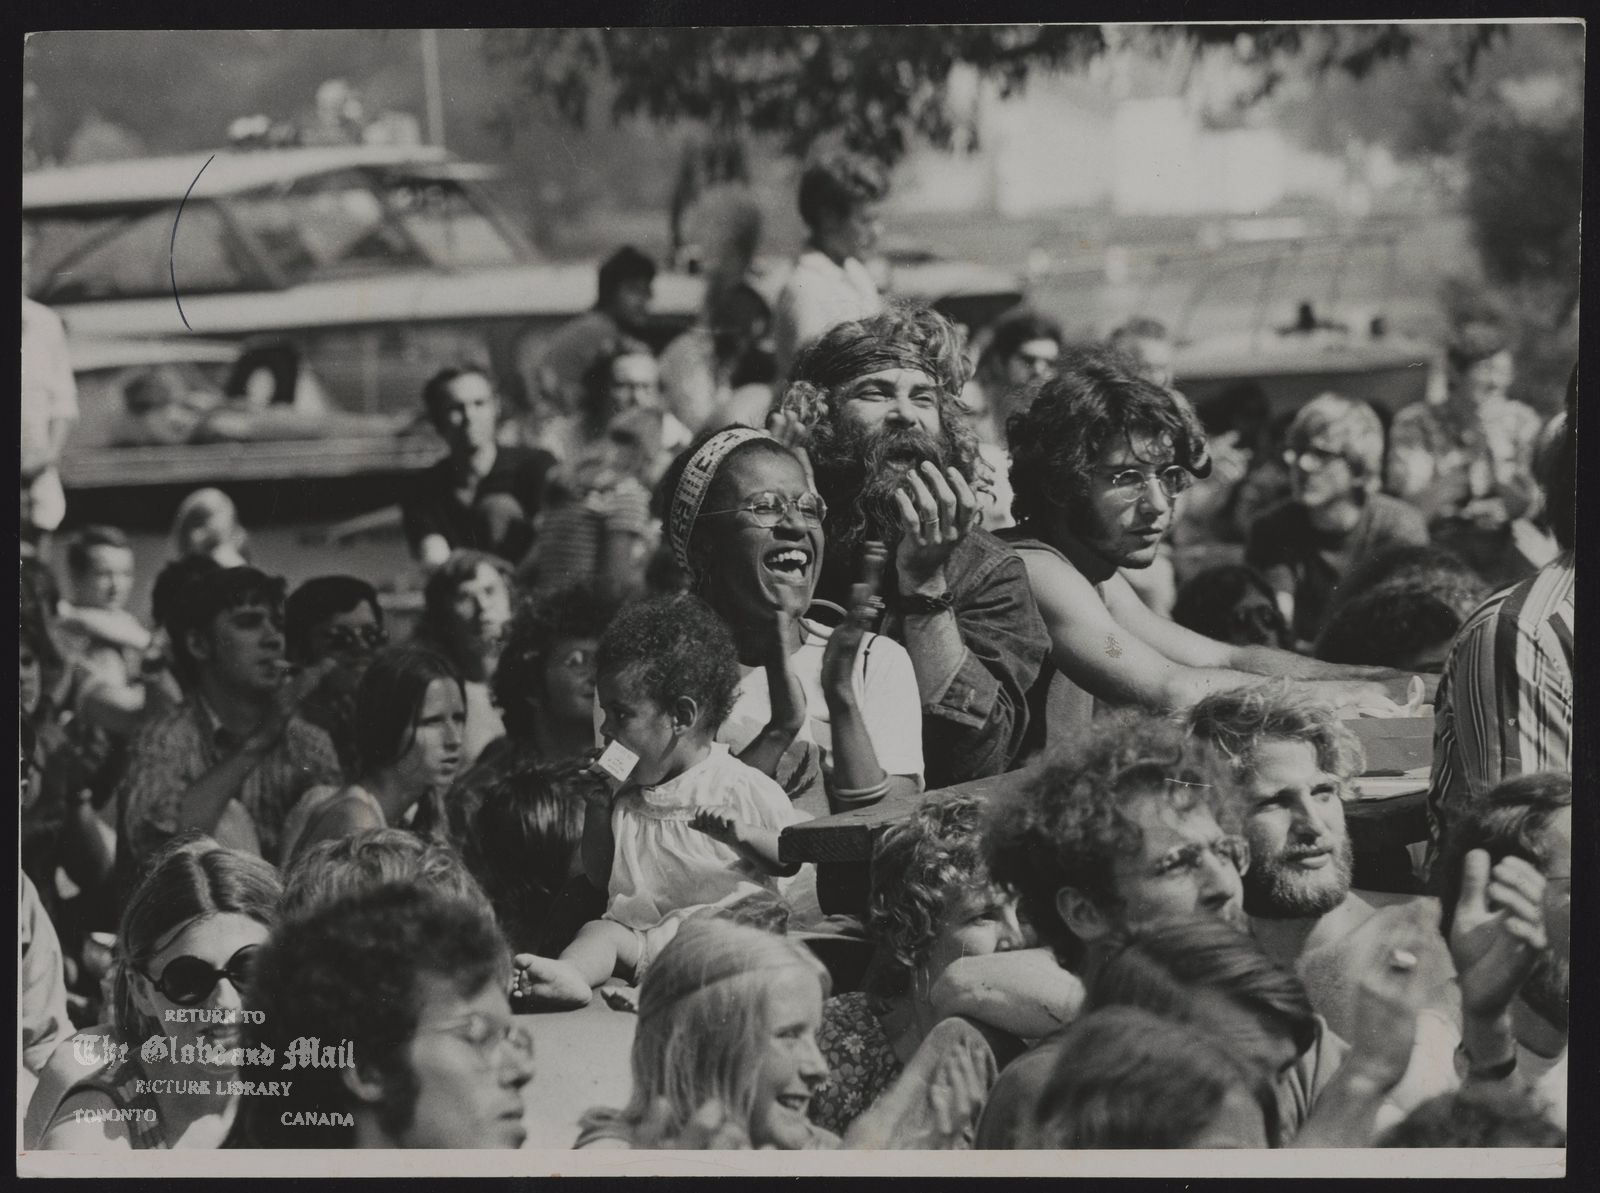 The notes transcribed from the back of this photograph are as follows: MARIPOSA FOLK FESTIVAL (Toronto Island) 80,000 people went to the festival at Centre Island Toronto on the weekend.